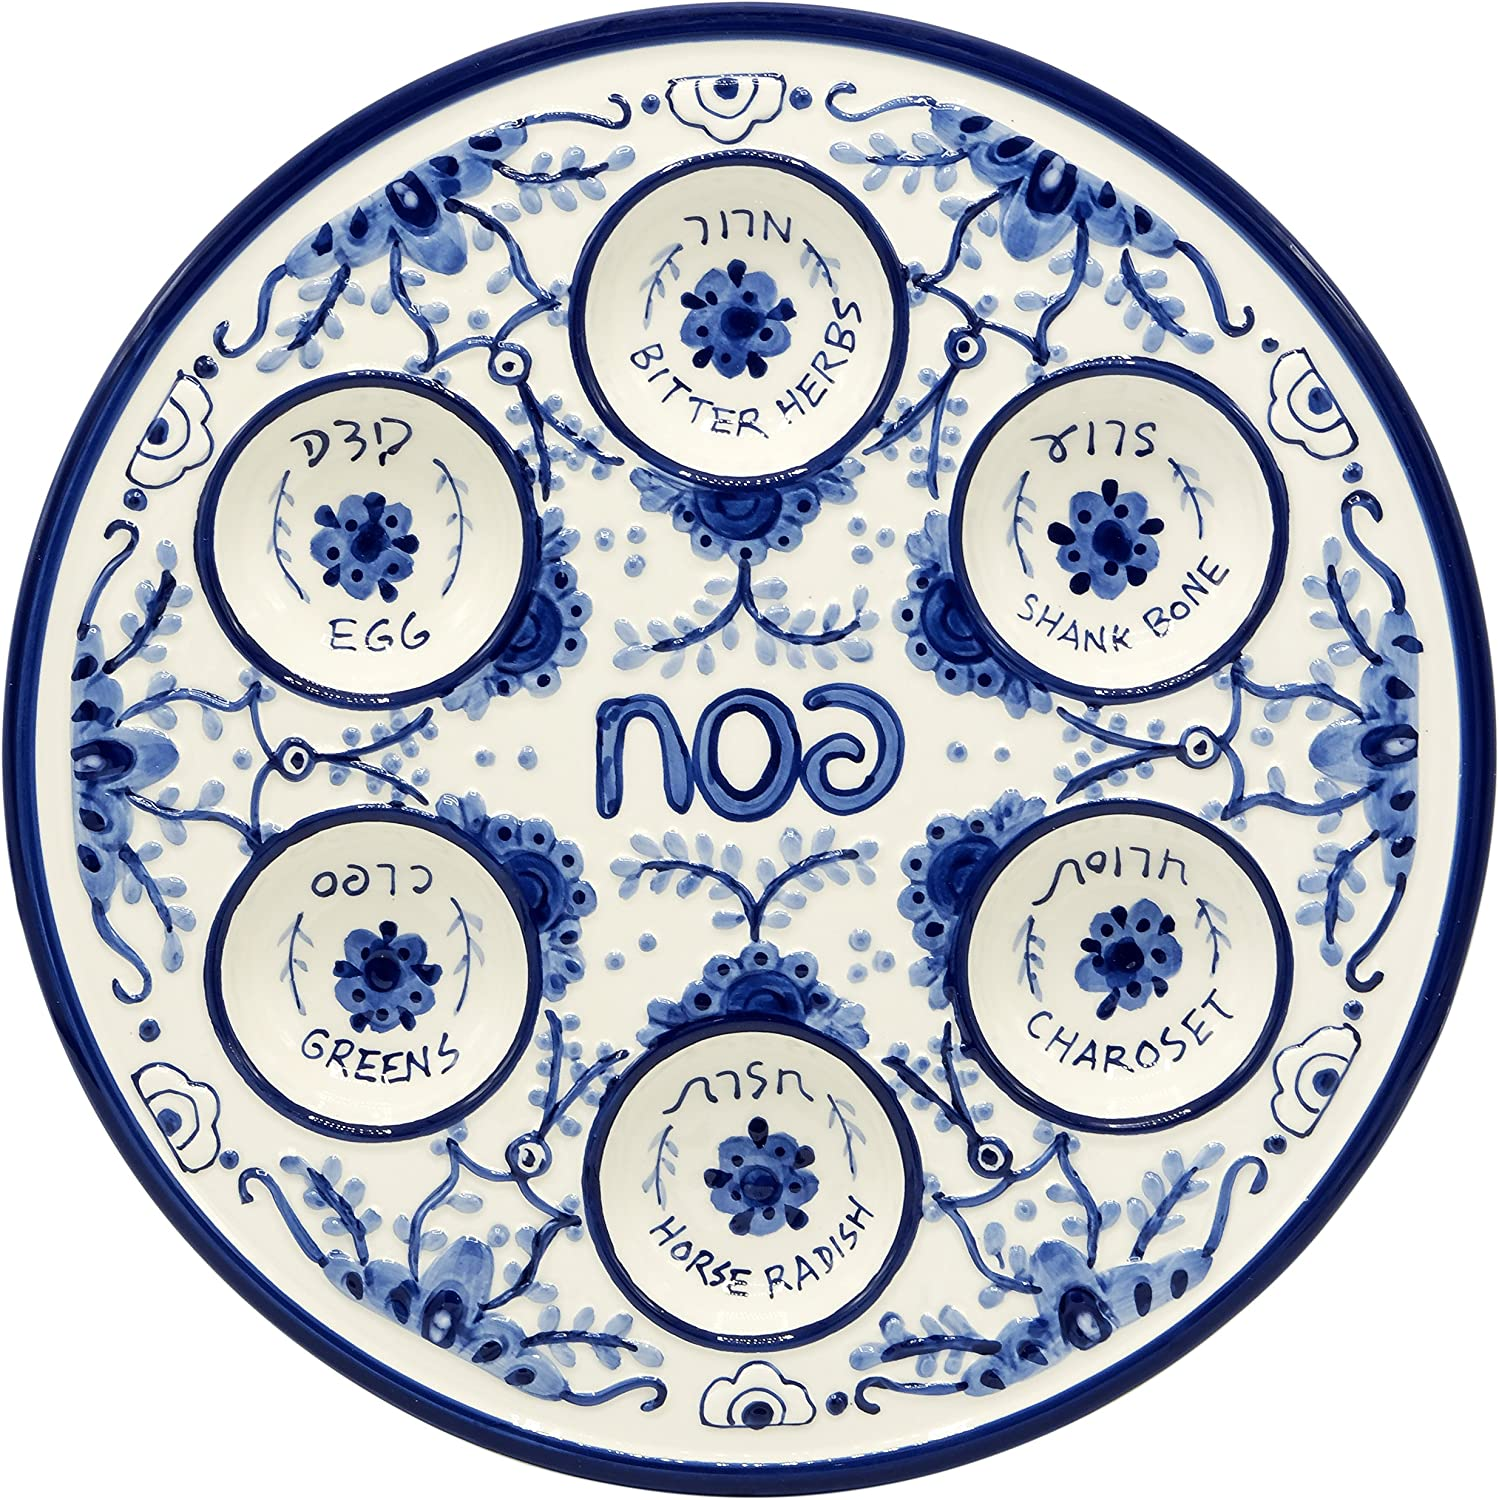 Passover Seder Plate For Pesach Food Ceramic 12 Blue White Delft Look Kitchen Dining